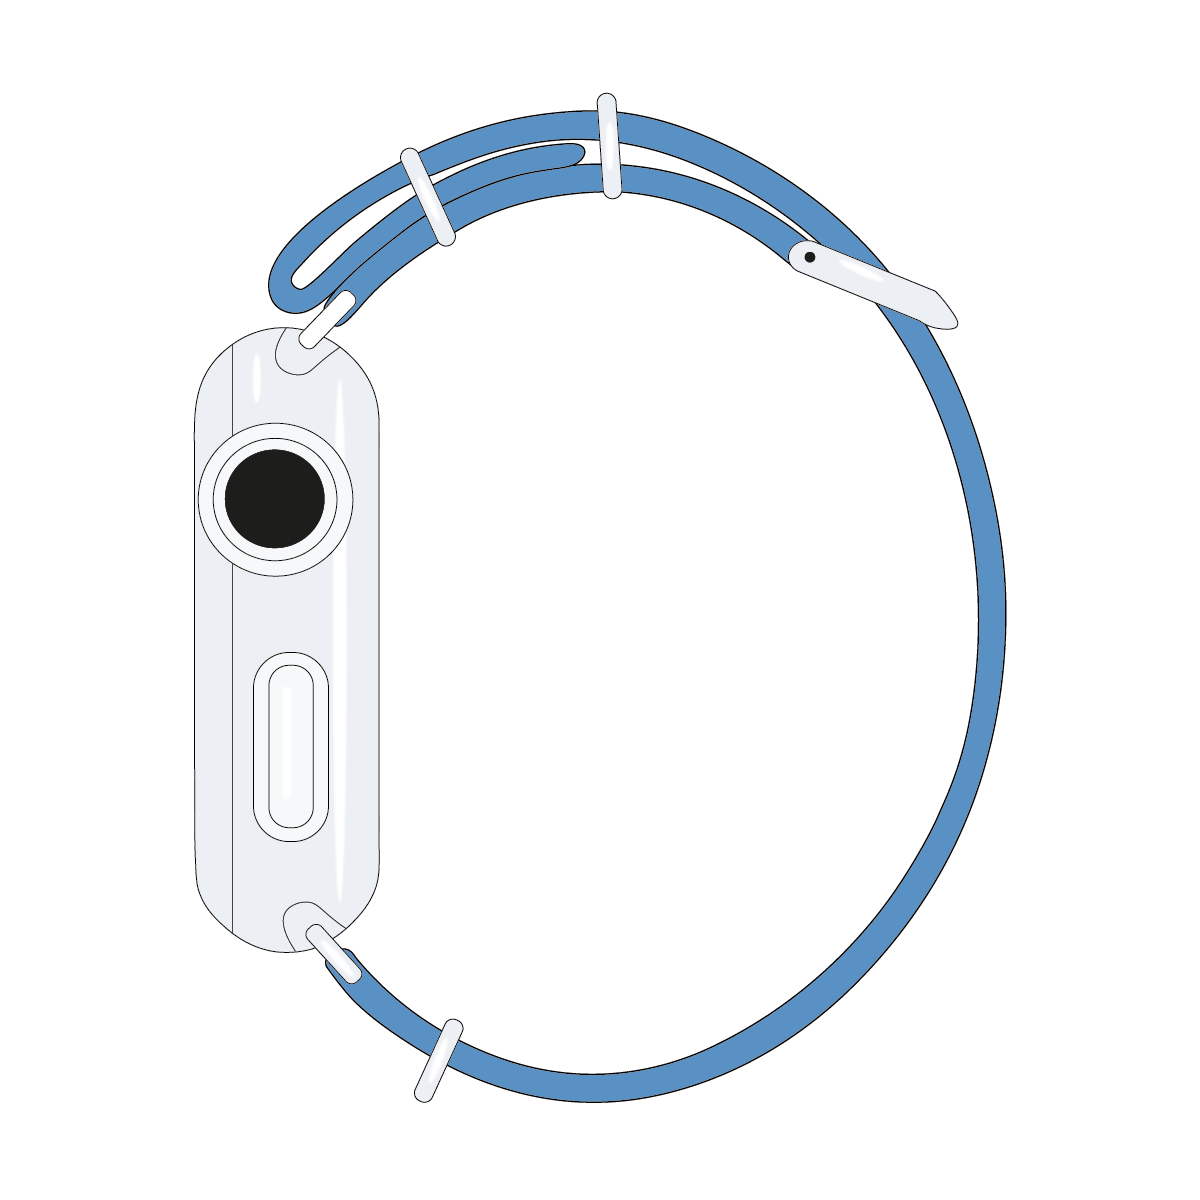 Cinturino Nato Apple Watch in nylon celeste | Roobaya – Bild 4